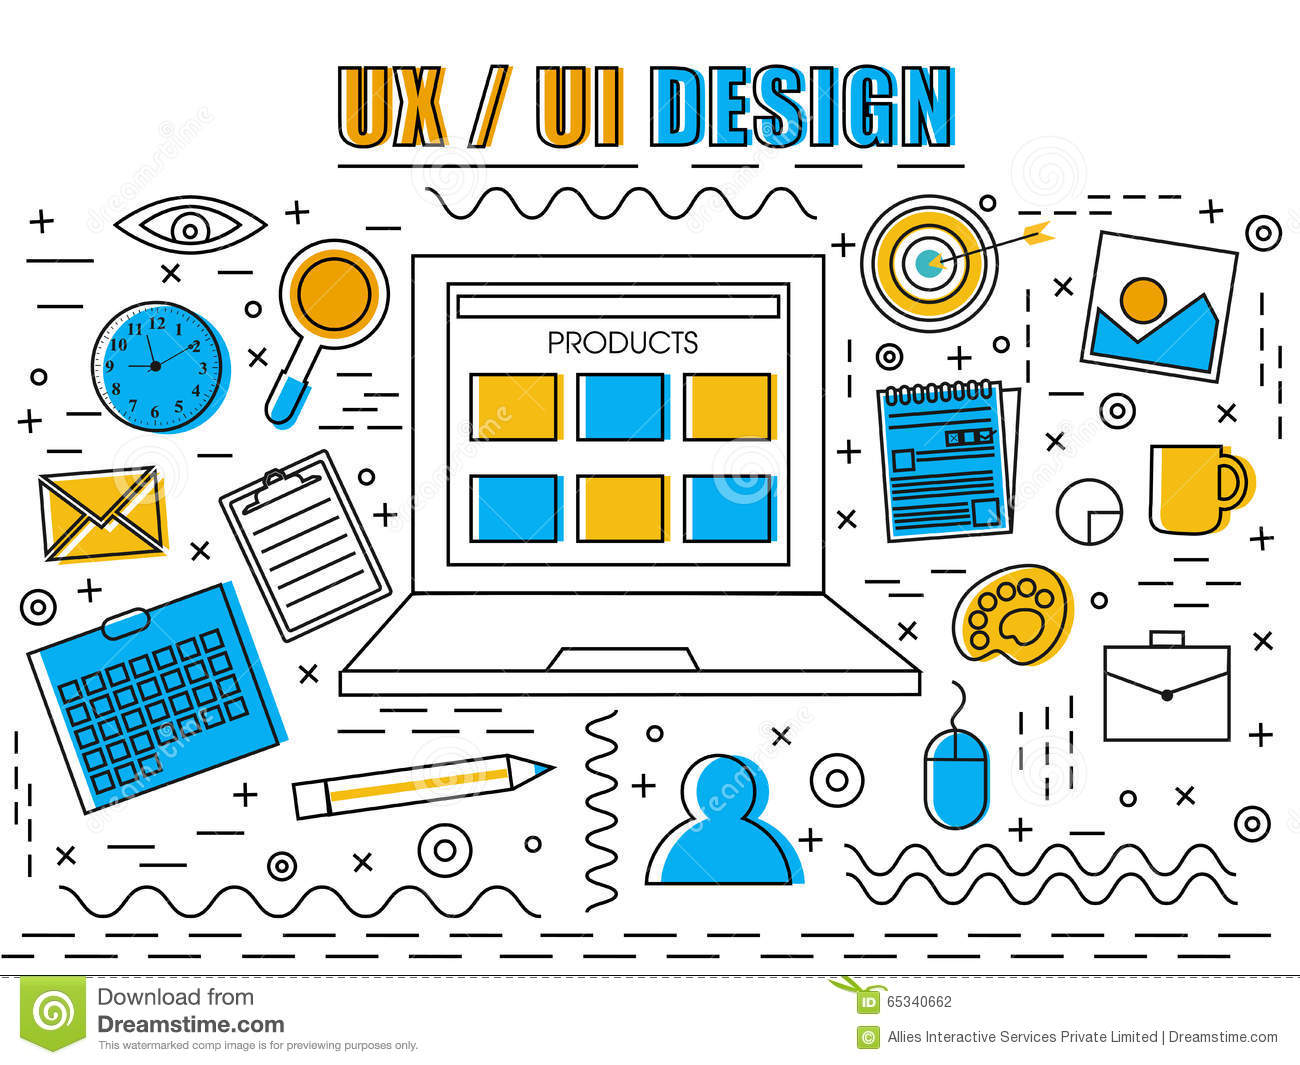 UX and UI design Infographic elements for Business.